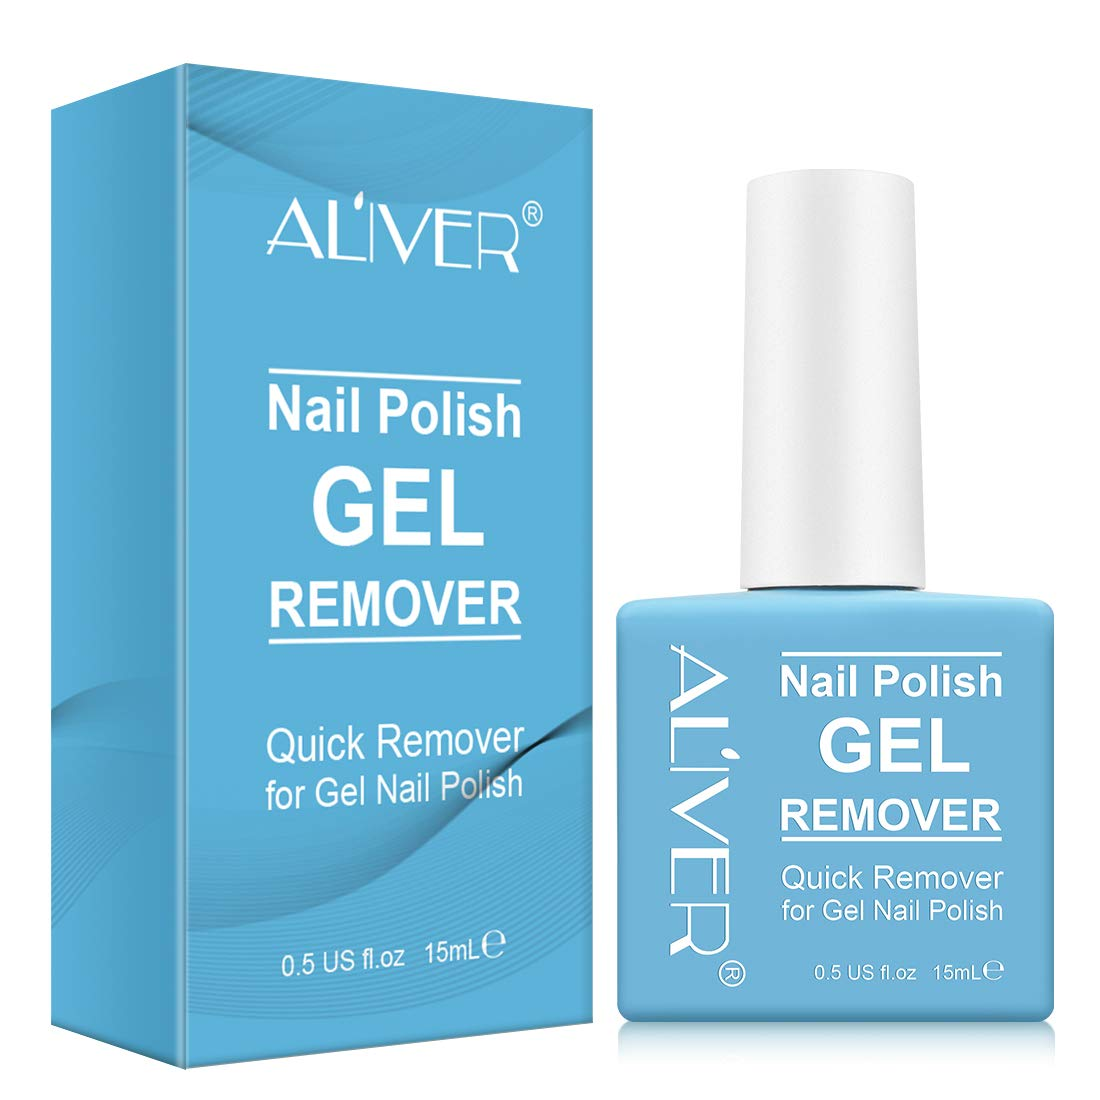 Nail Polish Remover Remove SALENEW very popular! Gel Within Minutes Quic 5 quality assurance